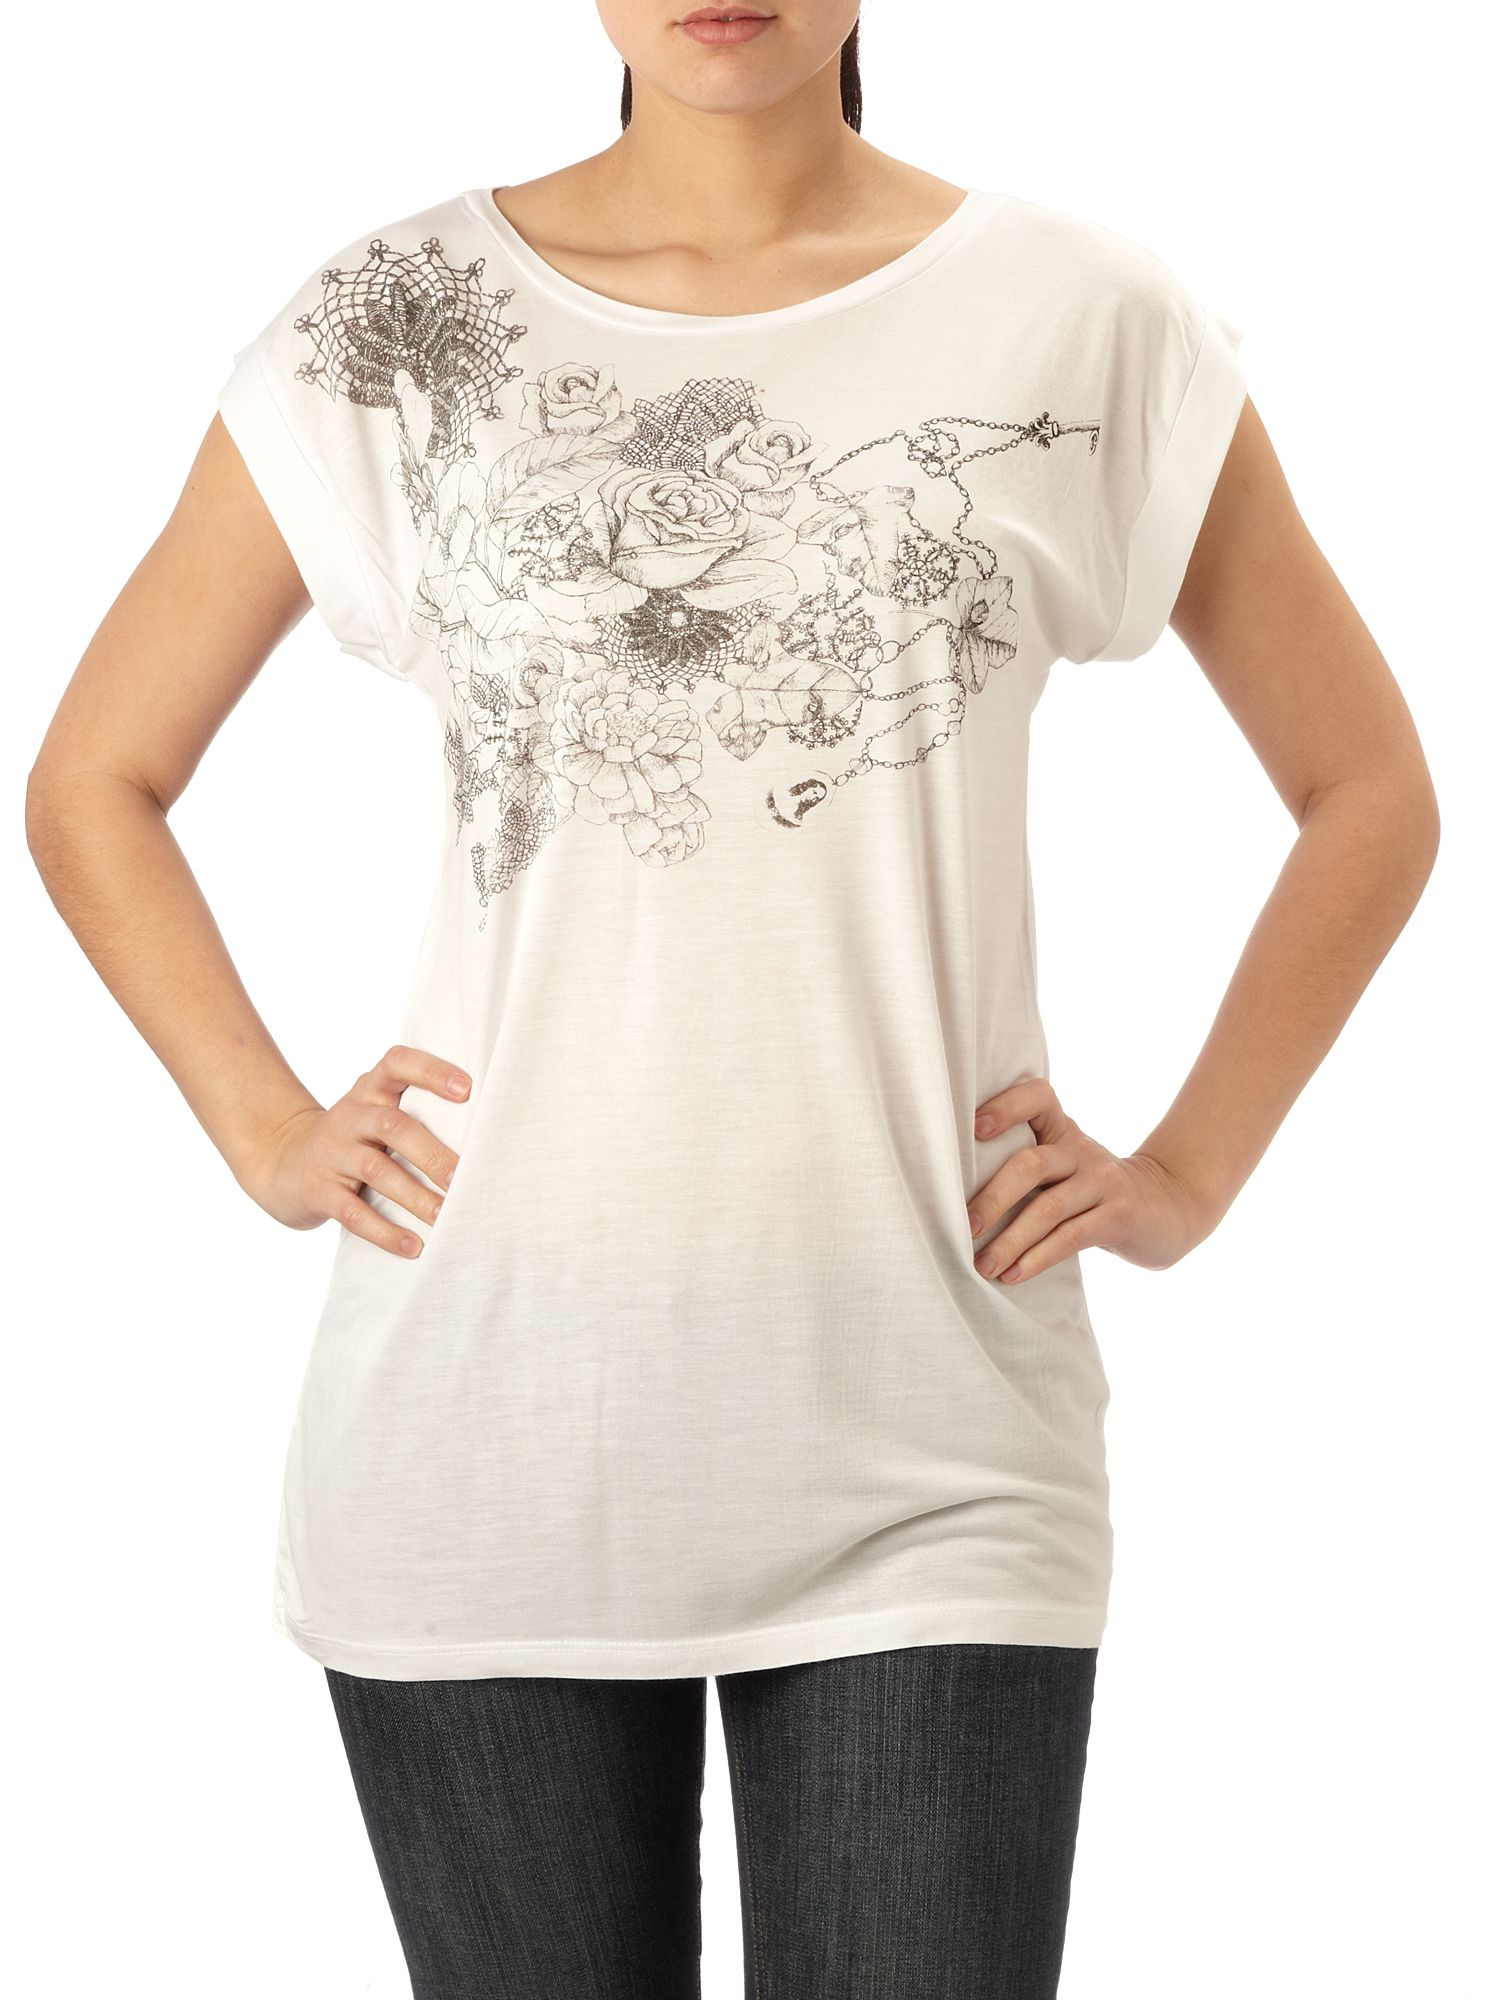 Therapy Nature collage t-shirt White product image